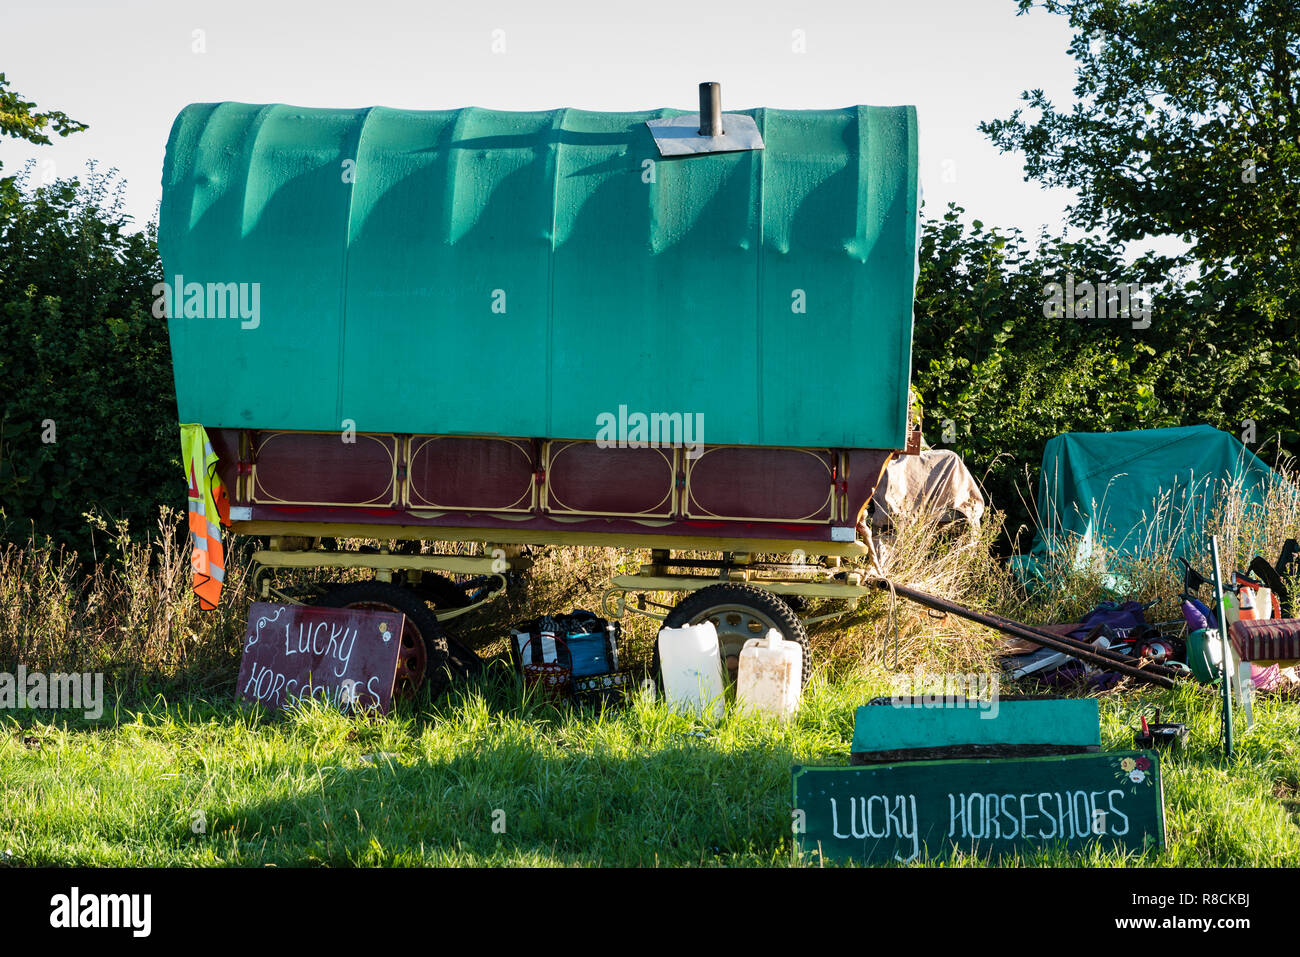 A horse-drawn caravan on a roadside verge in rural England with 'lucky horsehoes' signs. - Stock Image